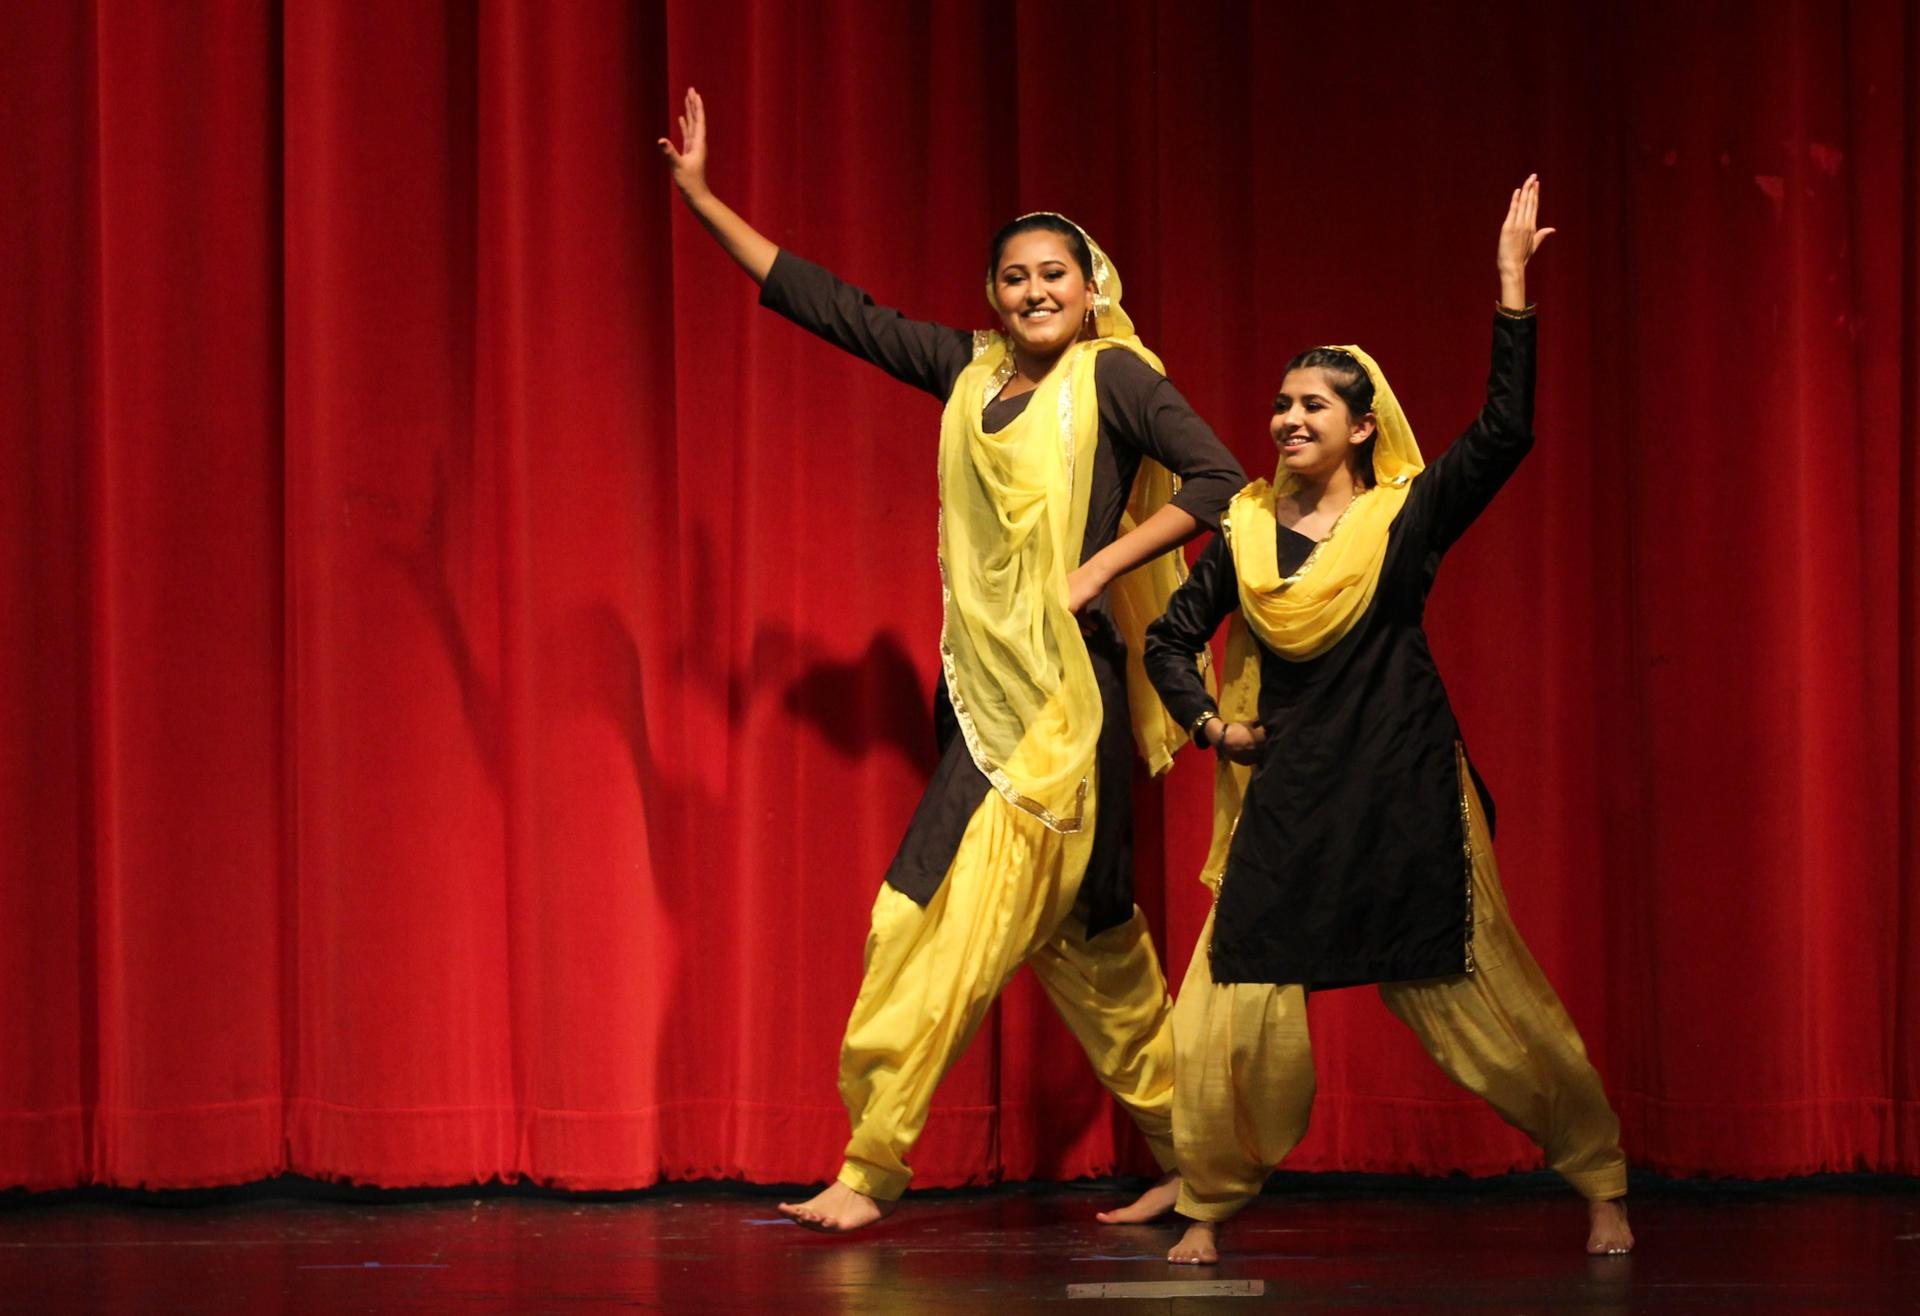 Stephanie Ponce and Sukhpreet Kaur dancing